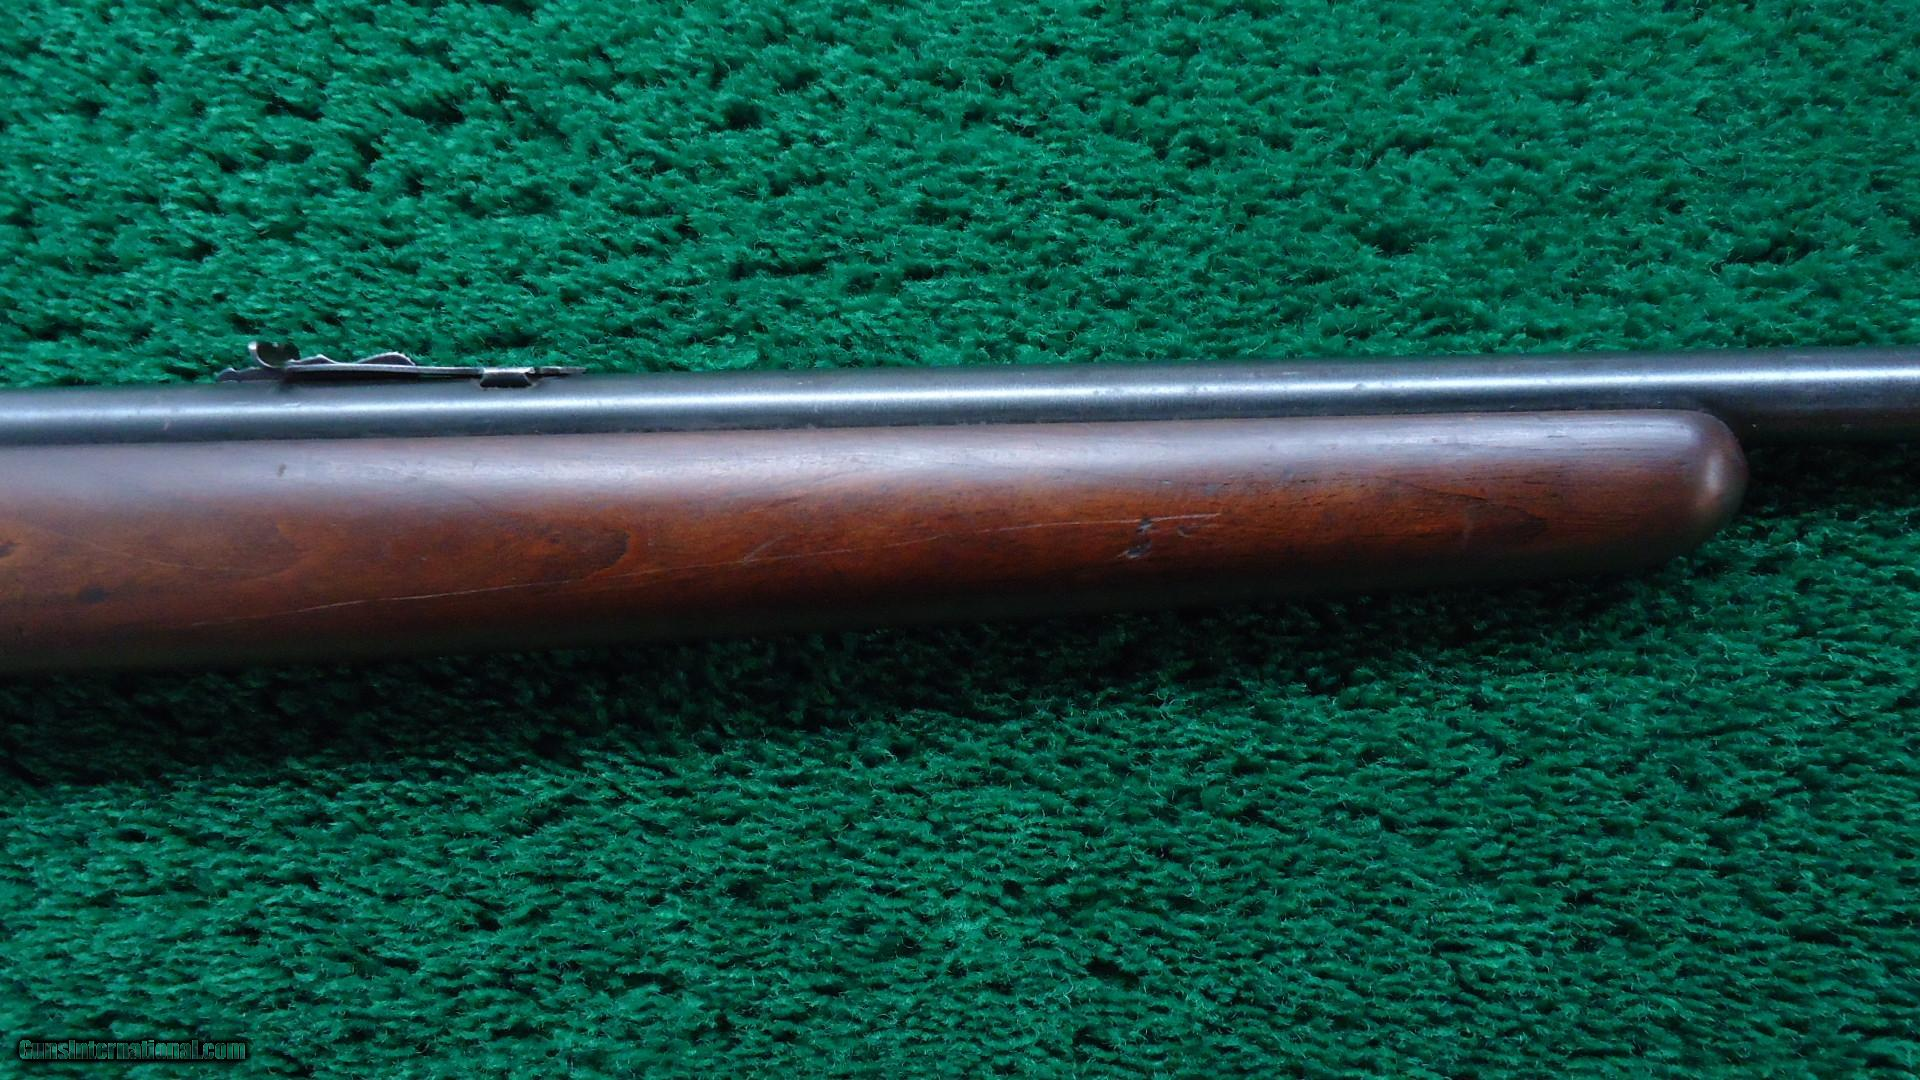 dating winchester model Winchester model 94ae factory serial and dates after 1983 are not currently available however some clues will help with something aproximate for your rifle.